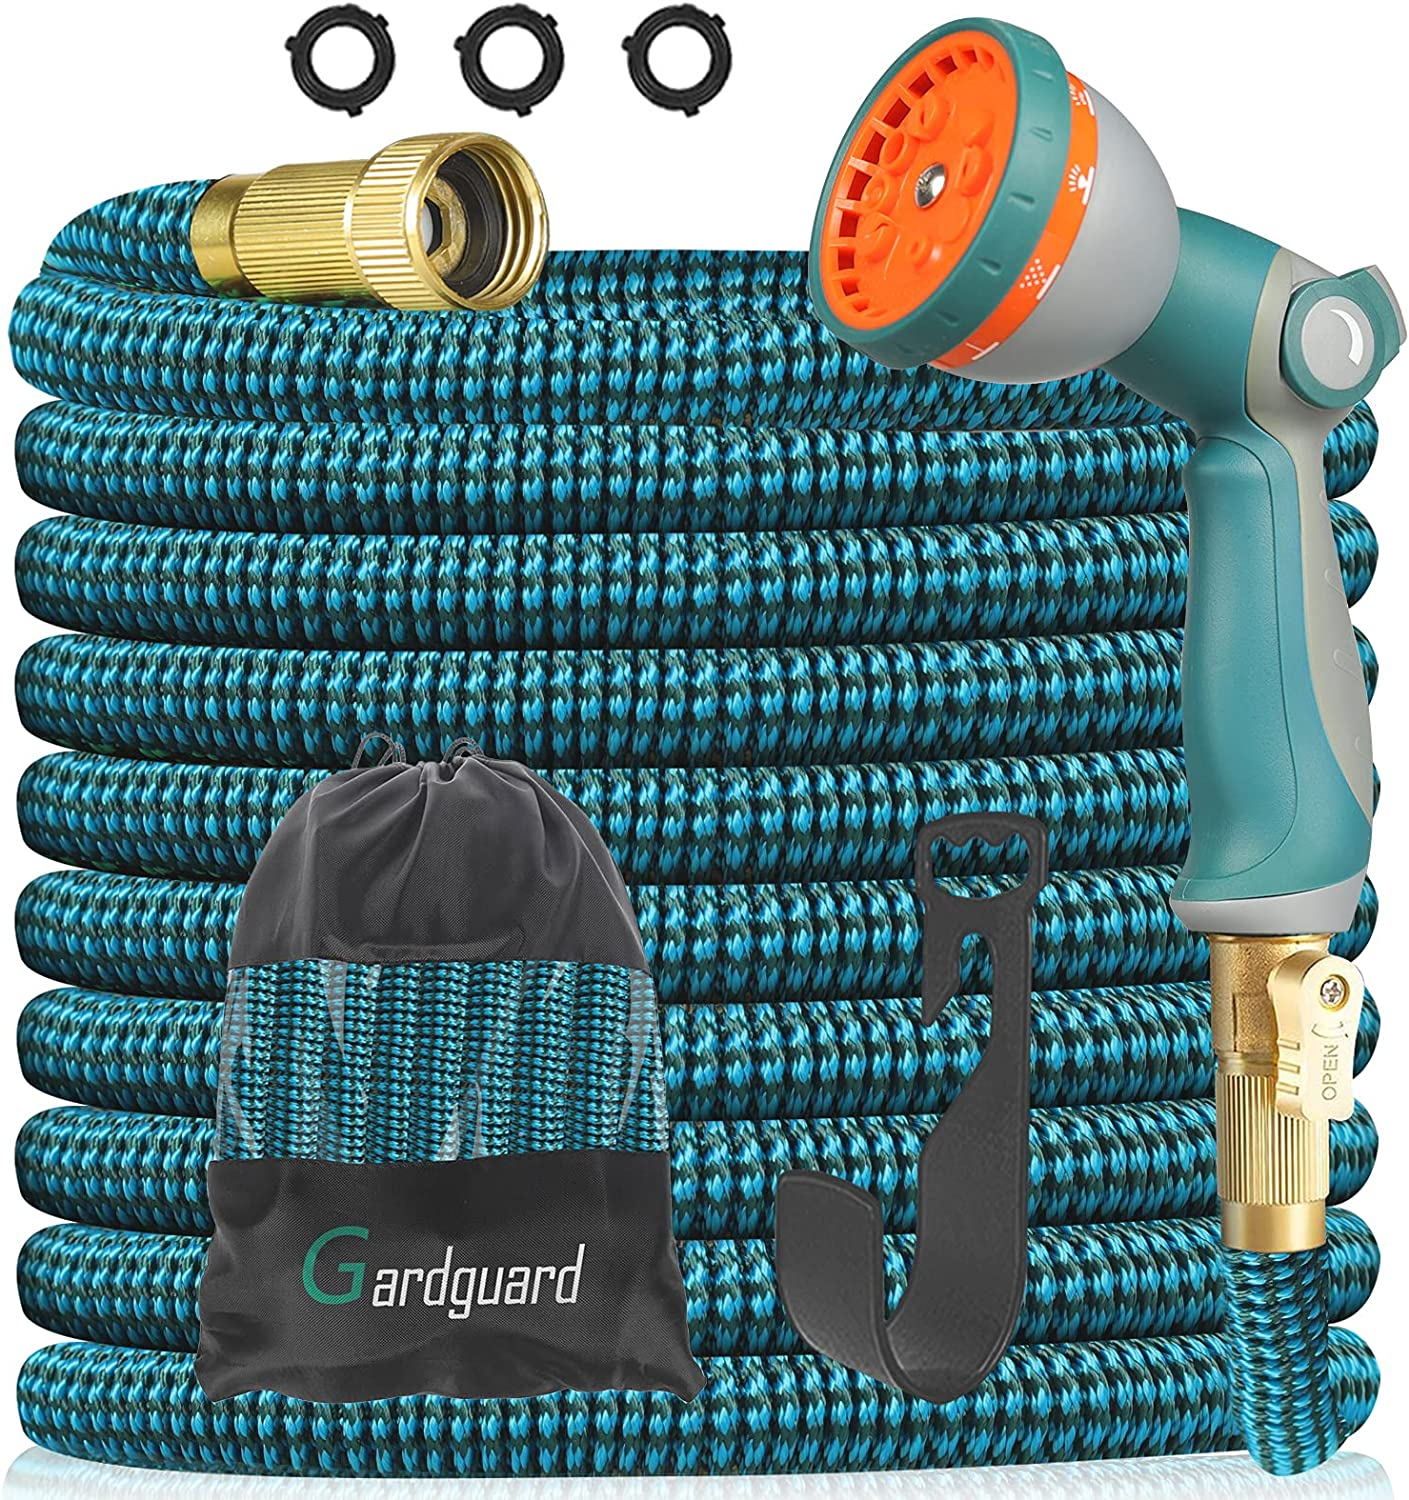 Gardguard 25ft Expandable Garden Hose Water Hose with 10 Function High Pressure Nozzles and 3-layers Latex Lightweight ExpandingWash Hose, 3/4 Connectors Leakproof, Outdoor Yard Watering and Washing